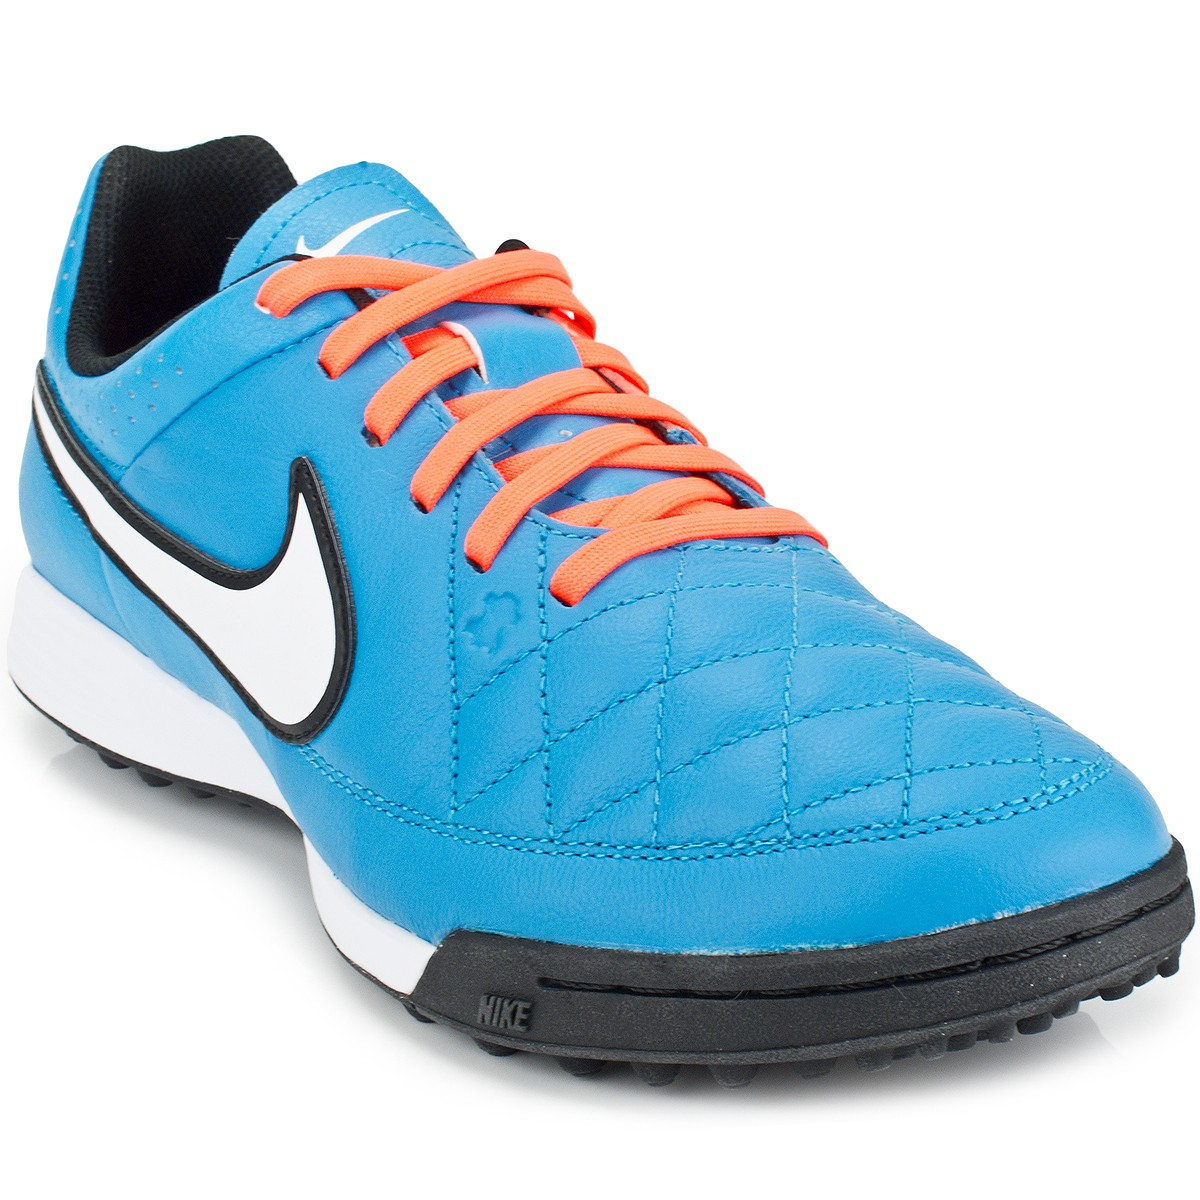 Chuteira Nike Tiempo Genio Leather TF  e2337c3521afb